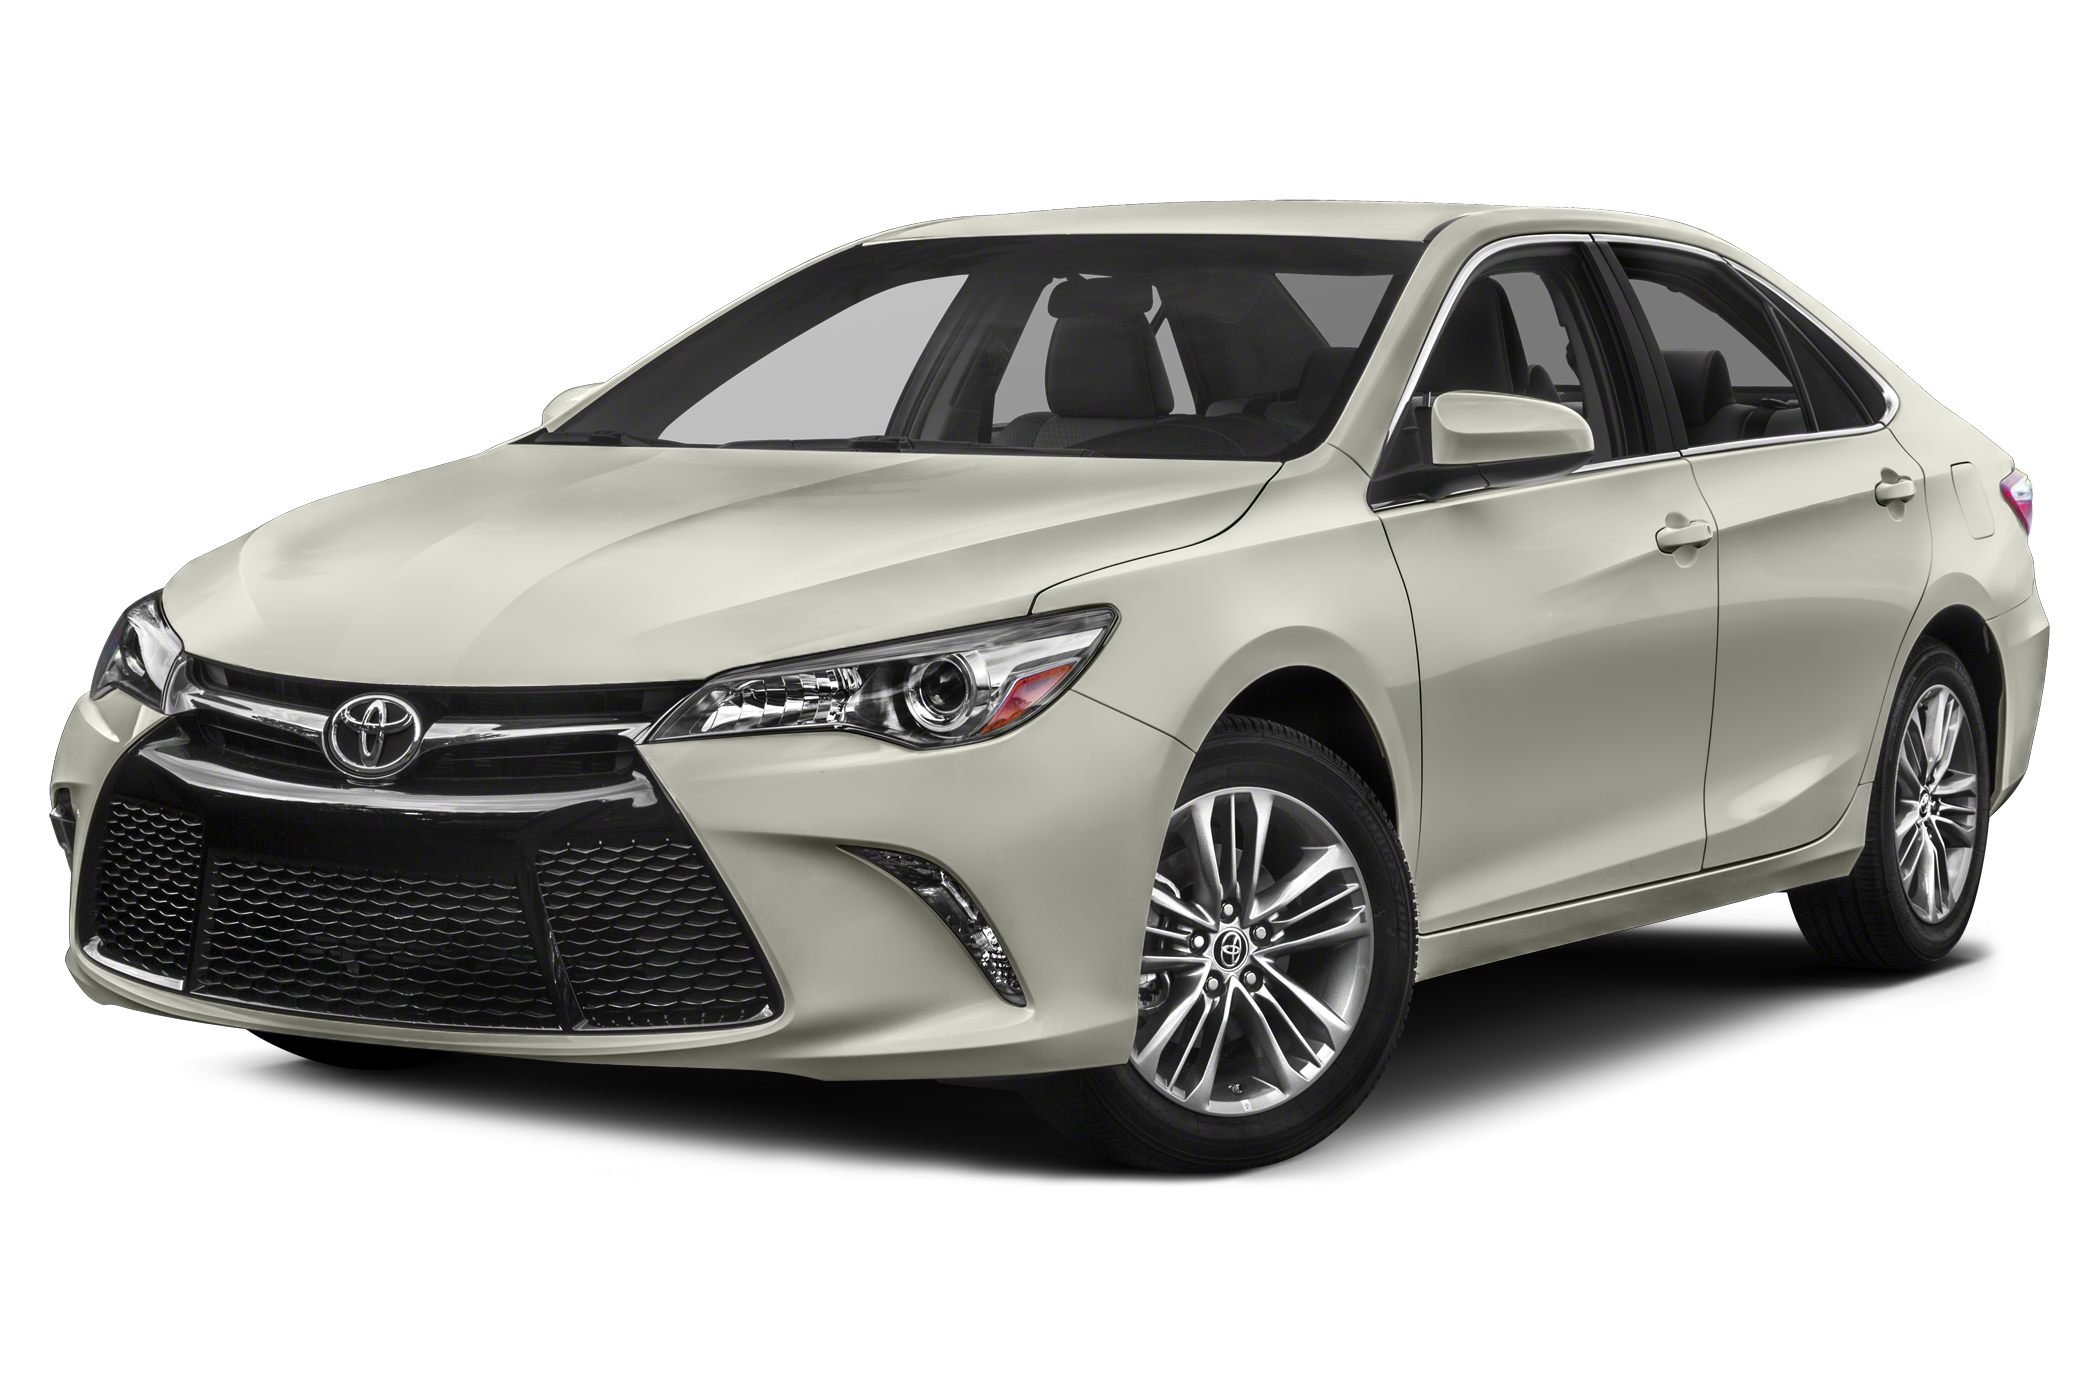 2015 Toyota Camry XSE Sedan for sale in New York for $27,055 with 0 miles